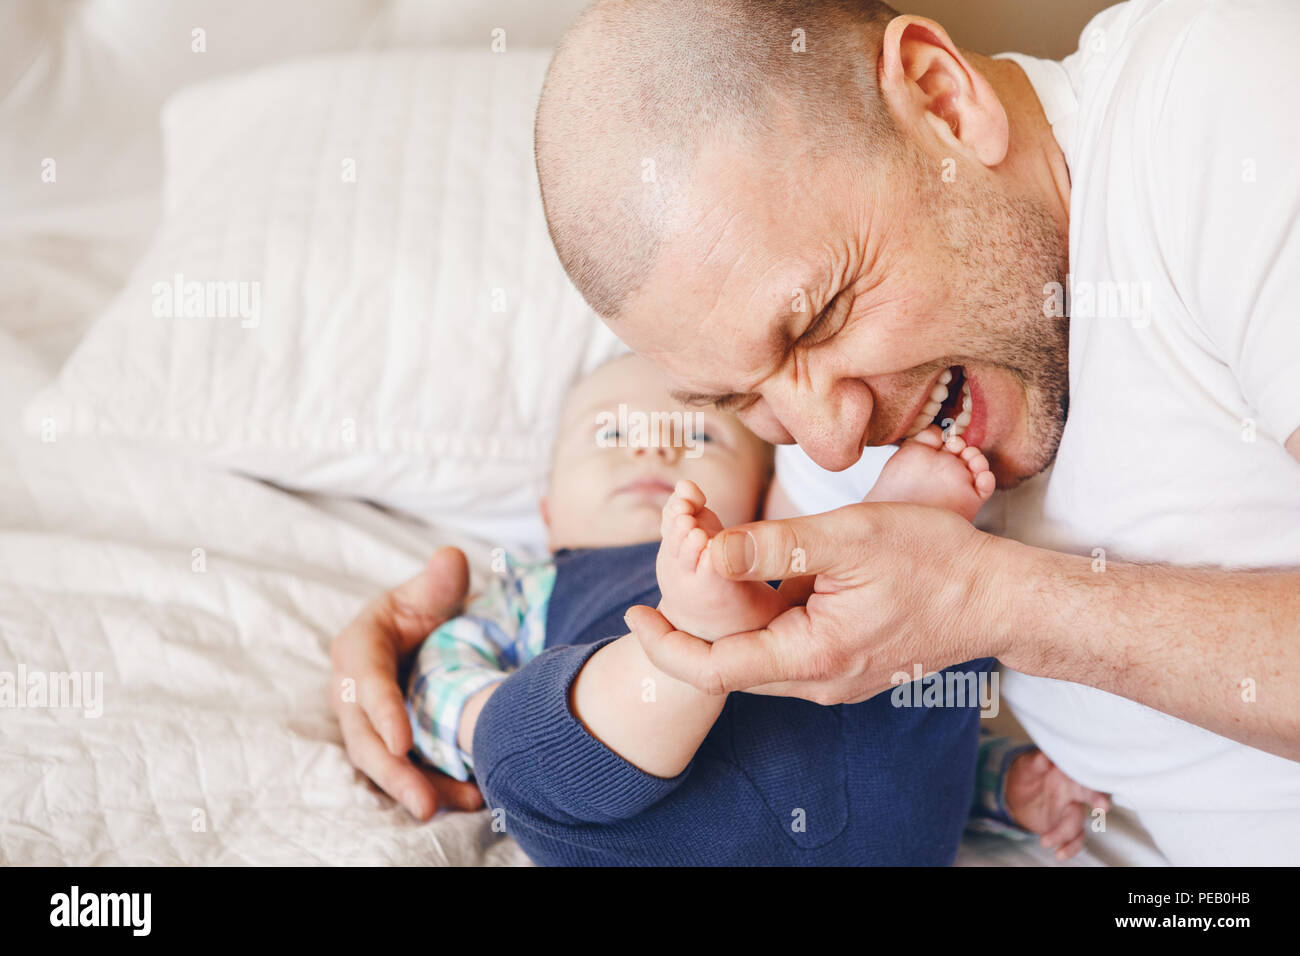 Funny portrait of middle age Caucasian father in white t-shirt lying in bed with newborn baby son kissing biting his feet toes, parenting childhood bo Stock Photo